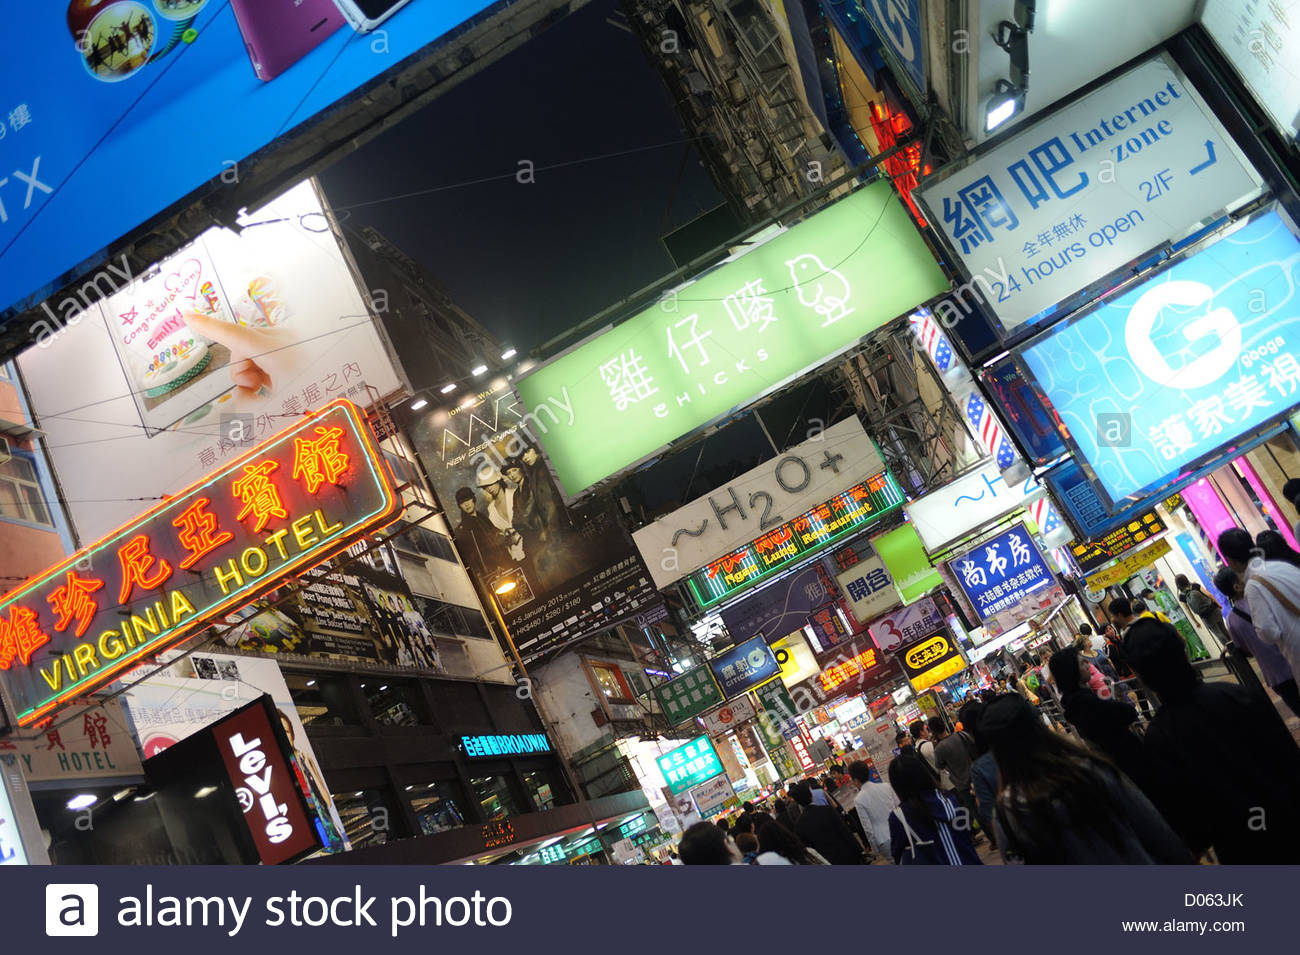 Hong Kong S.A.R Neon lights along the shopping streets of Mong Kok. - Stock Image